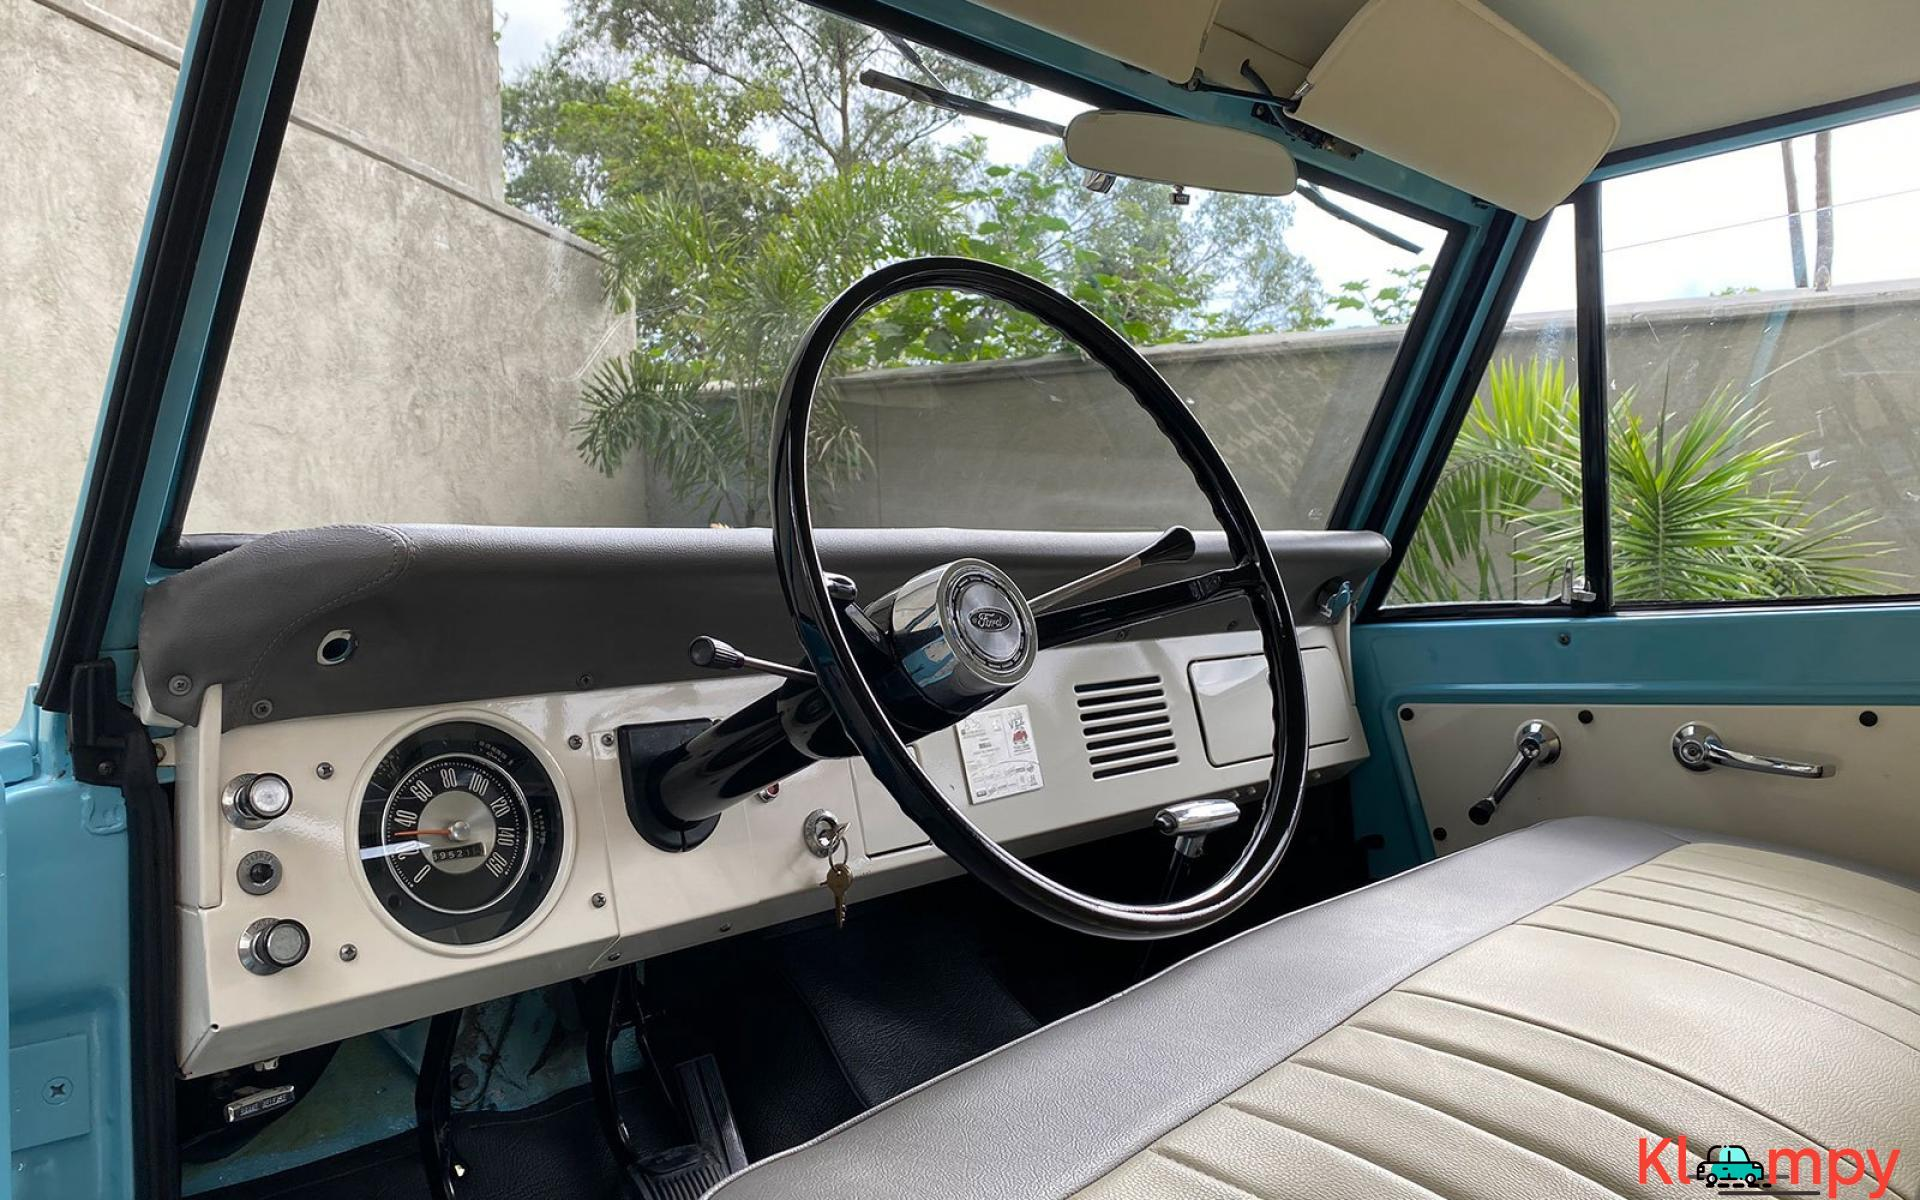 1967 Ford Bronco 170 Inline-Six - 11/21